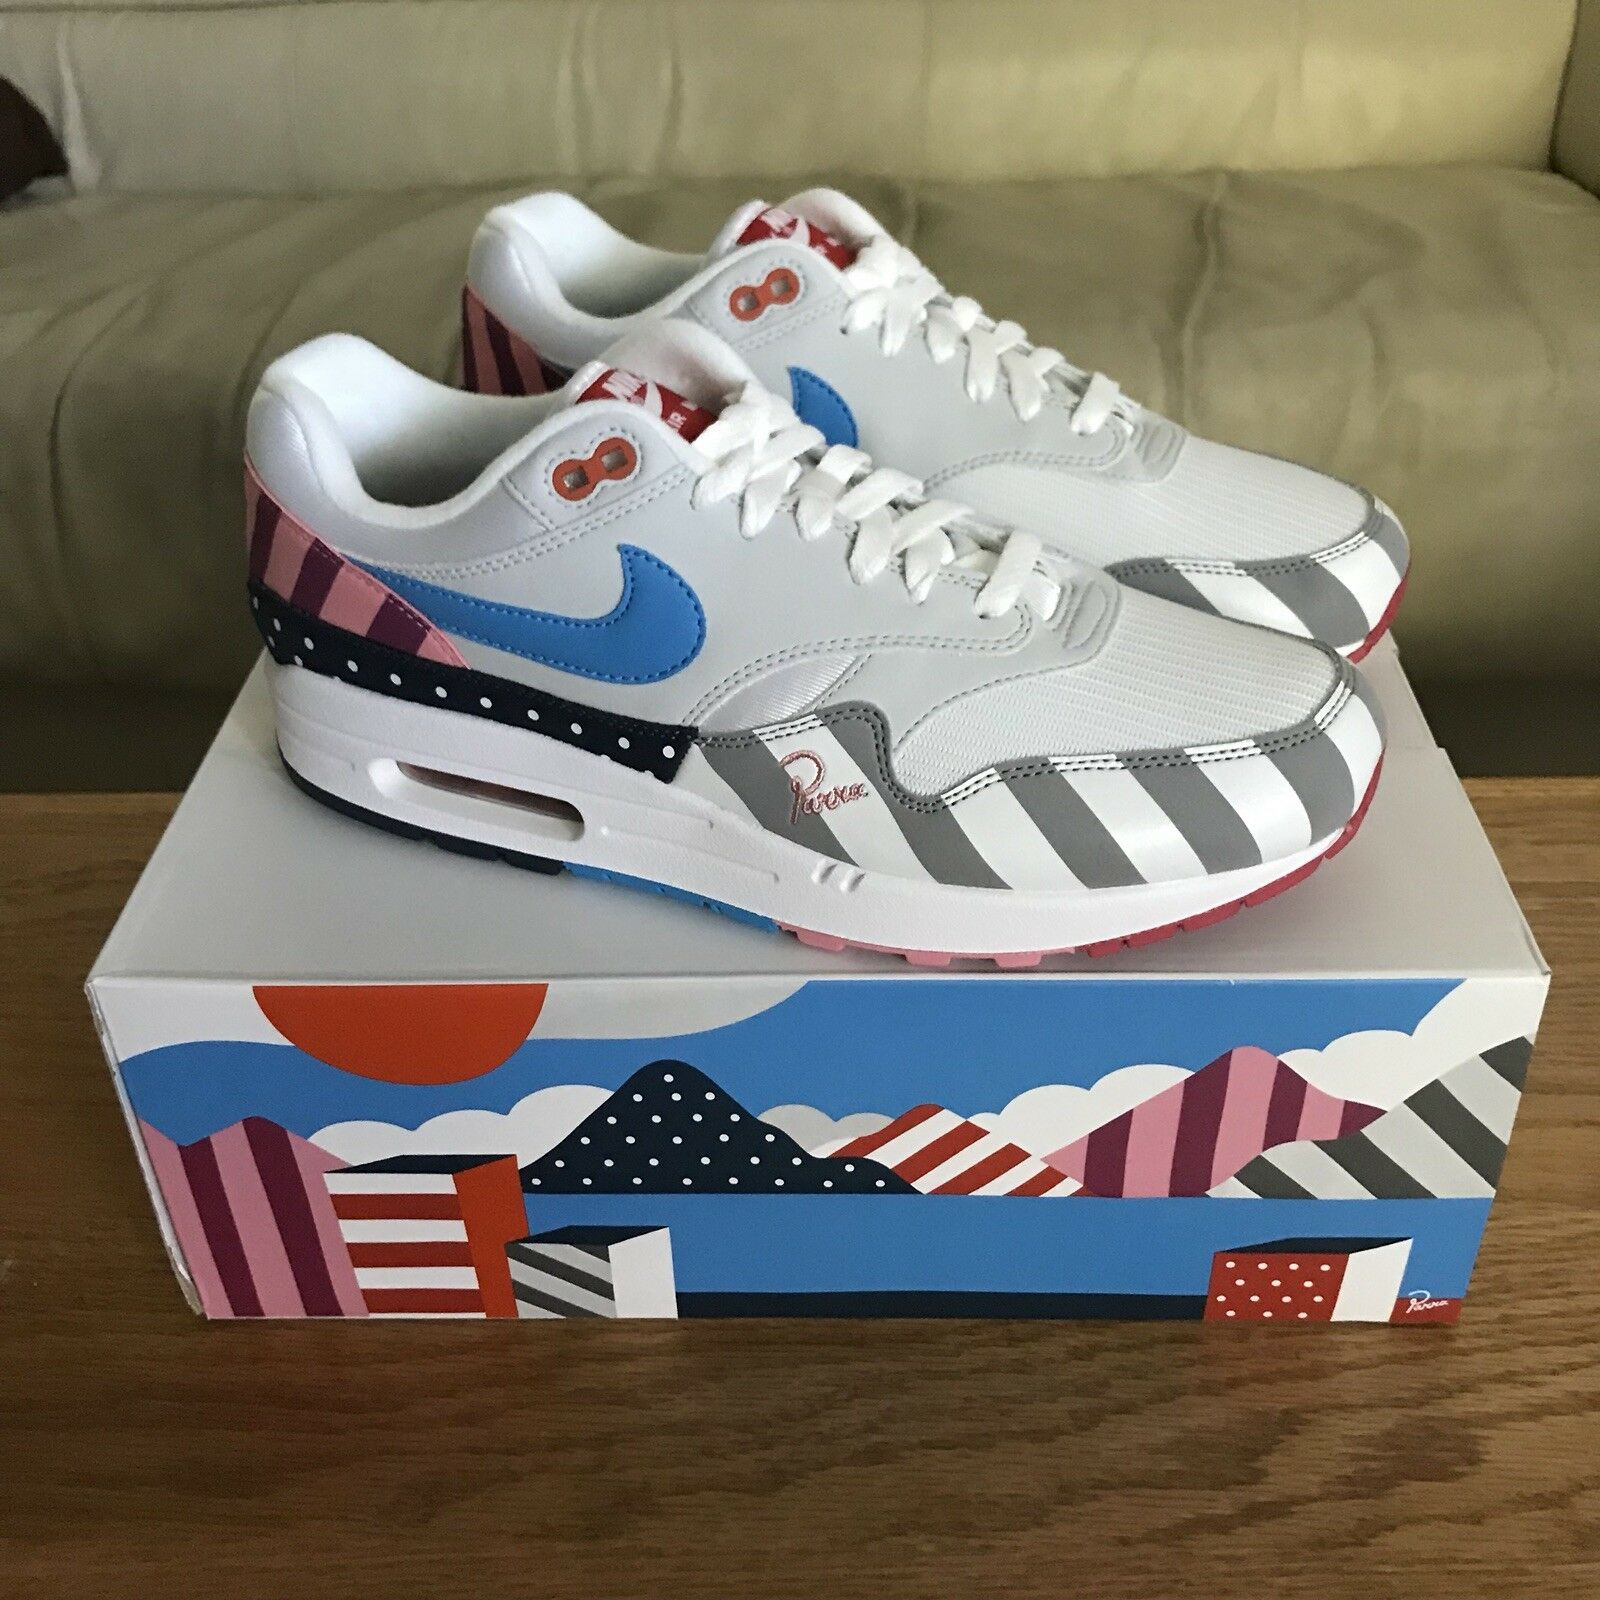 Parra x Nike Air Max 1 2018 Brand New Size 10 AT3057 100